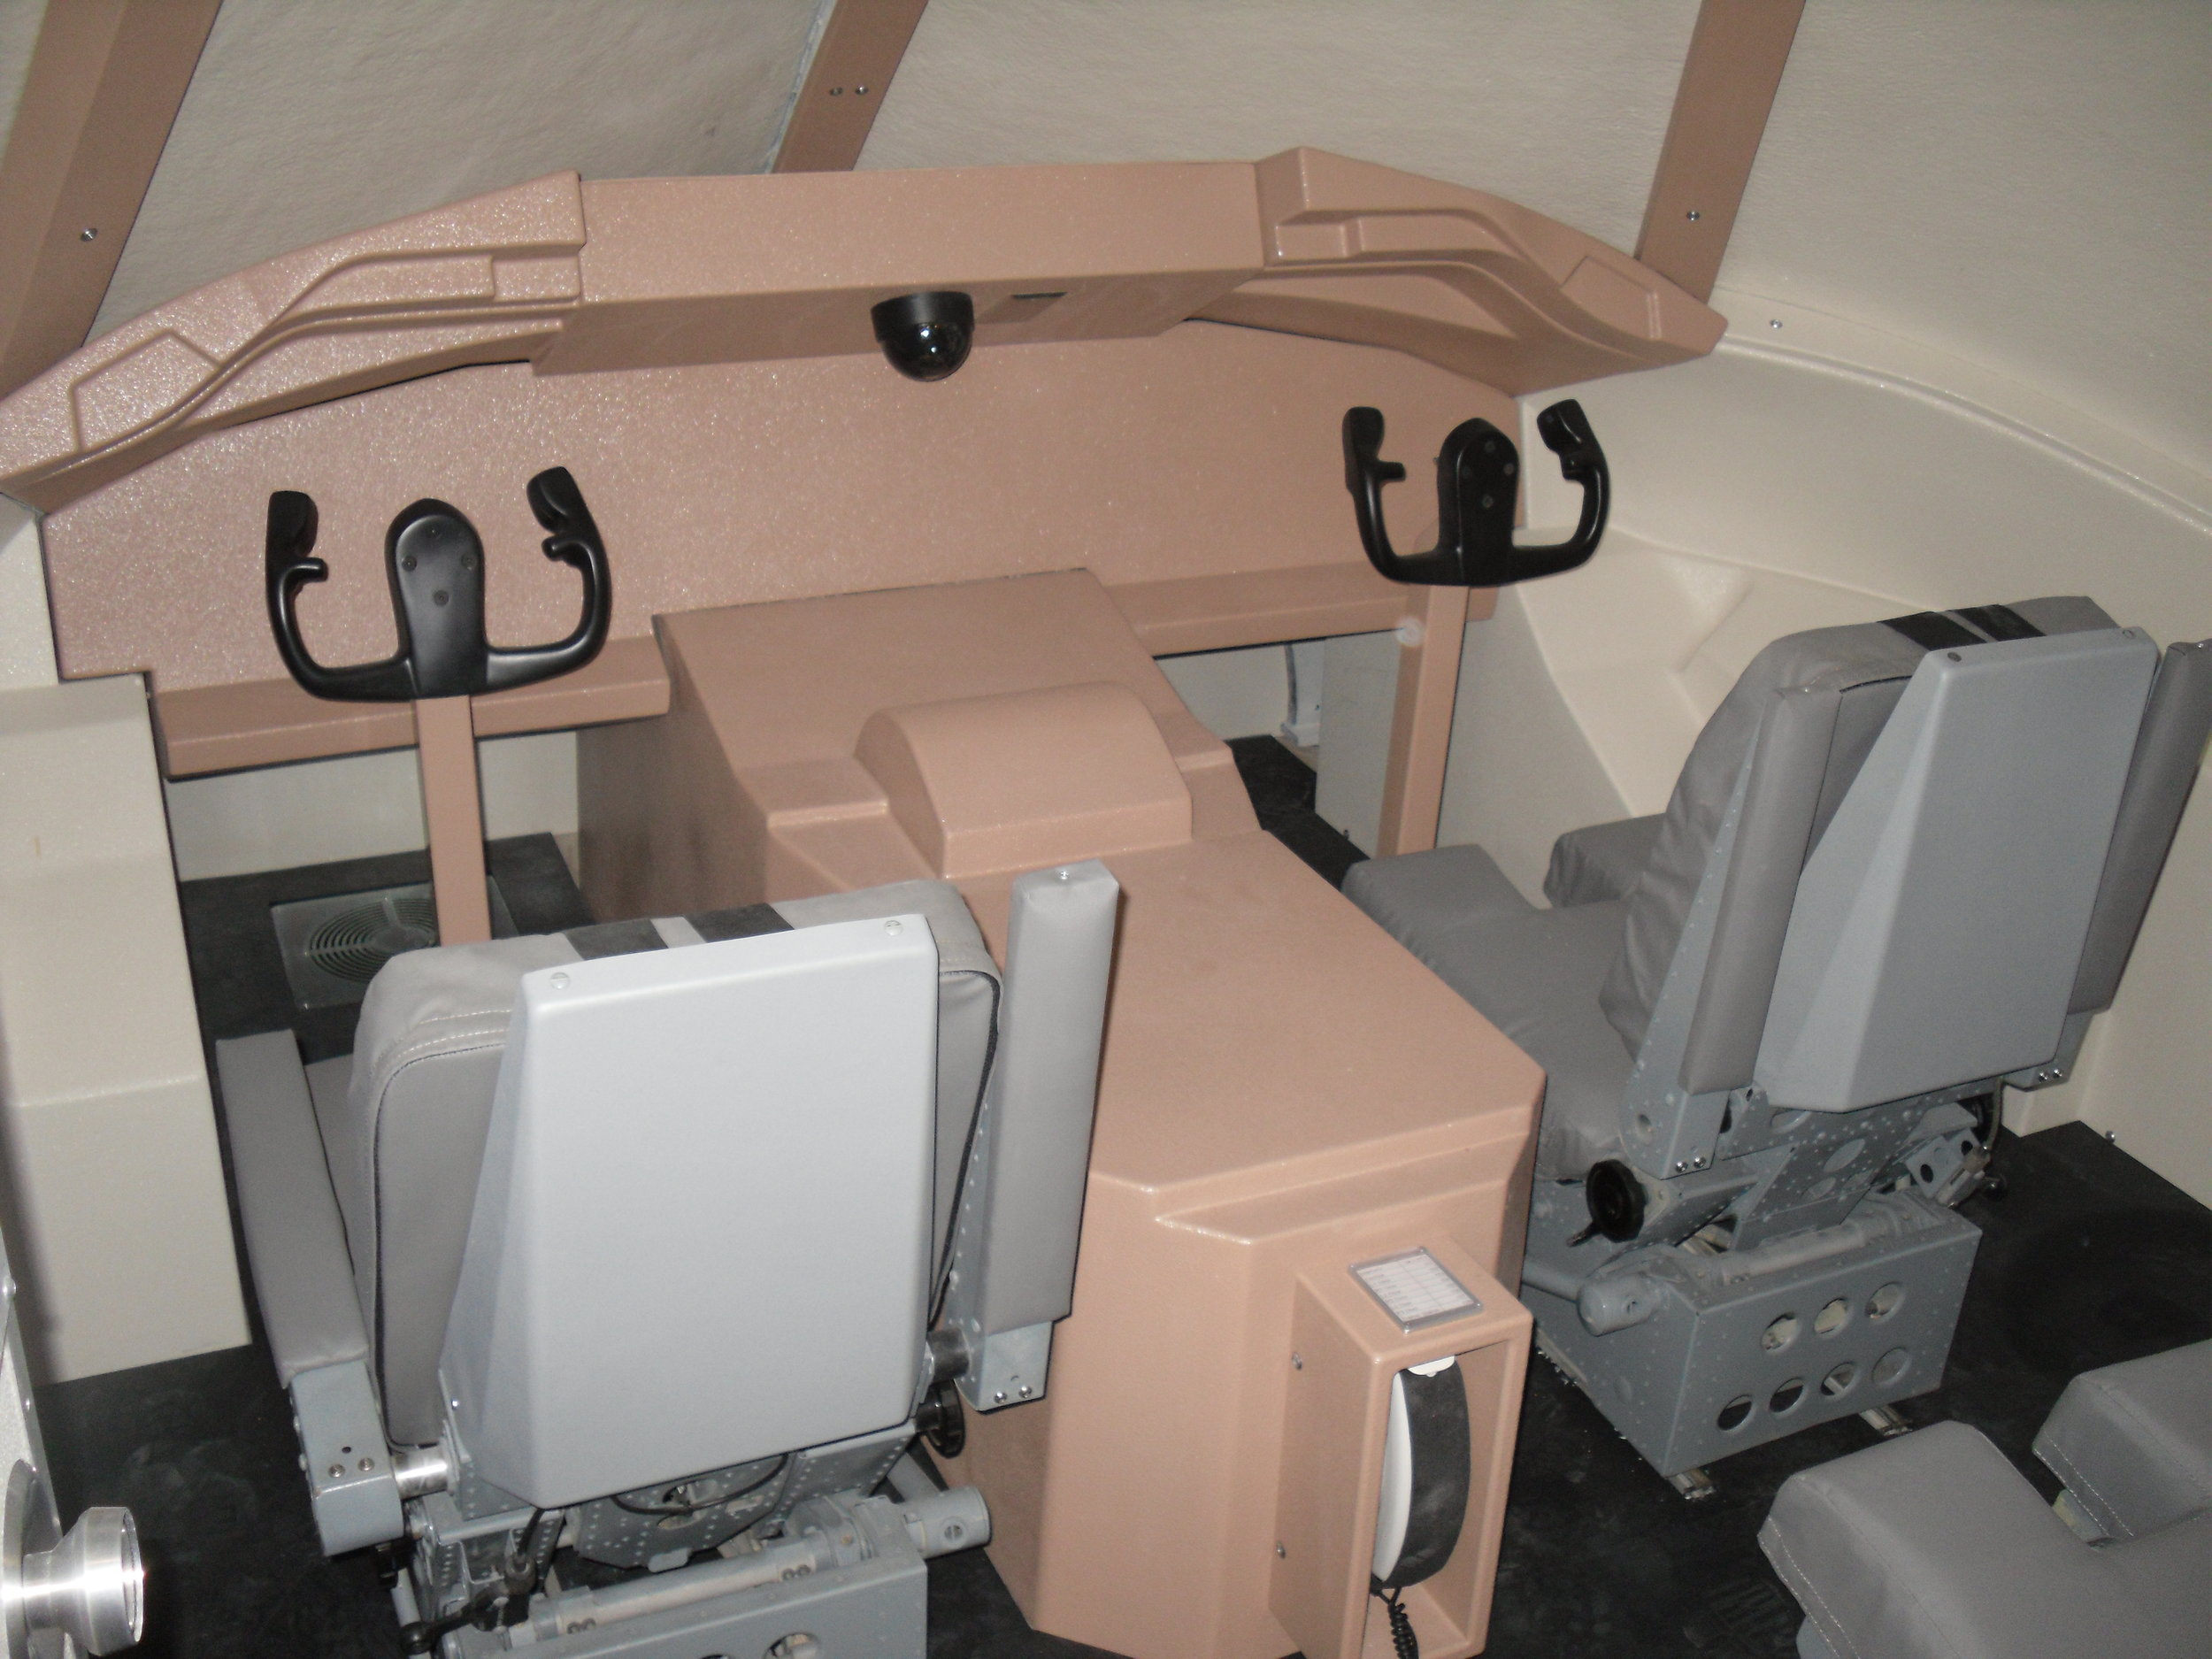 Flight Deck Security Training Simulator